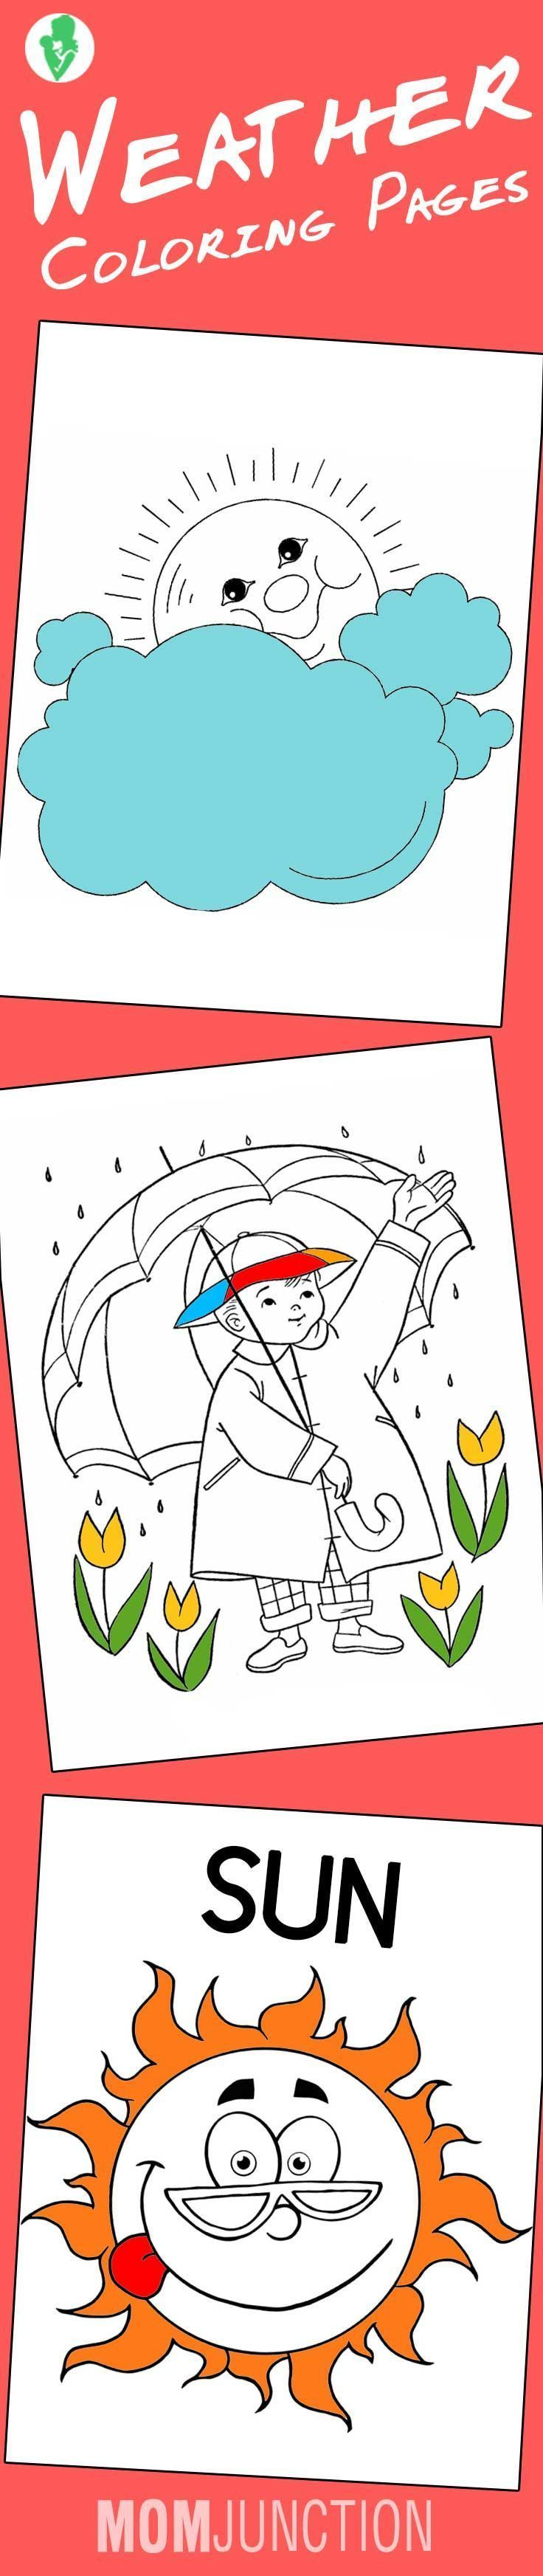 Top 25 Free Printable Dragon Tales Coloring Pages Online further  in addition 25 Free Printable Dragon Tales Coloring Pages Online together with Top 25 Free Printable Cookie Monster Coloring Pages Online as well Top 10 Free Printable Weather Coloring Pages Online further Top 10 Free Printable Disney Easter Coloring Pages Online additionally Top 20 Free Printable Snowman Coloring Pages Online also 15 Free Printable Sleeping Beauty Coloring Pages Online together with Cute Frosty The Snowman Coloring Pages For Toddlers also Top 35 Free Printable Christmas Tree Coloring Pages Online as well How to Train Your Dragon Coloring Pages   Free Printable. on top free printable snowman coloring pages online princess funny alien dragon tales earth detail